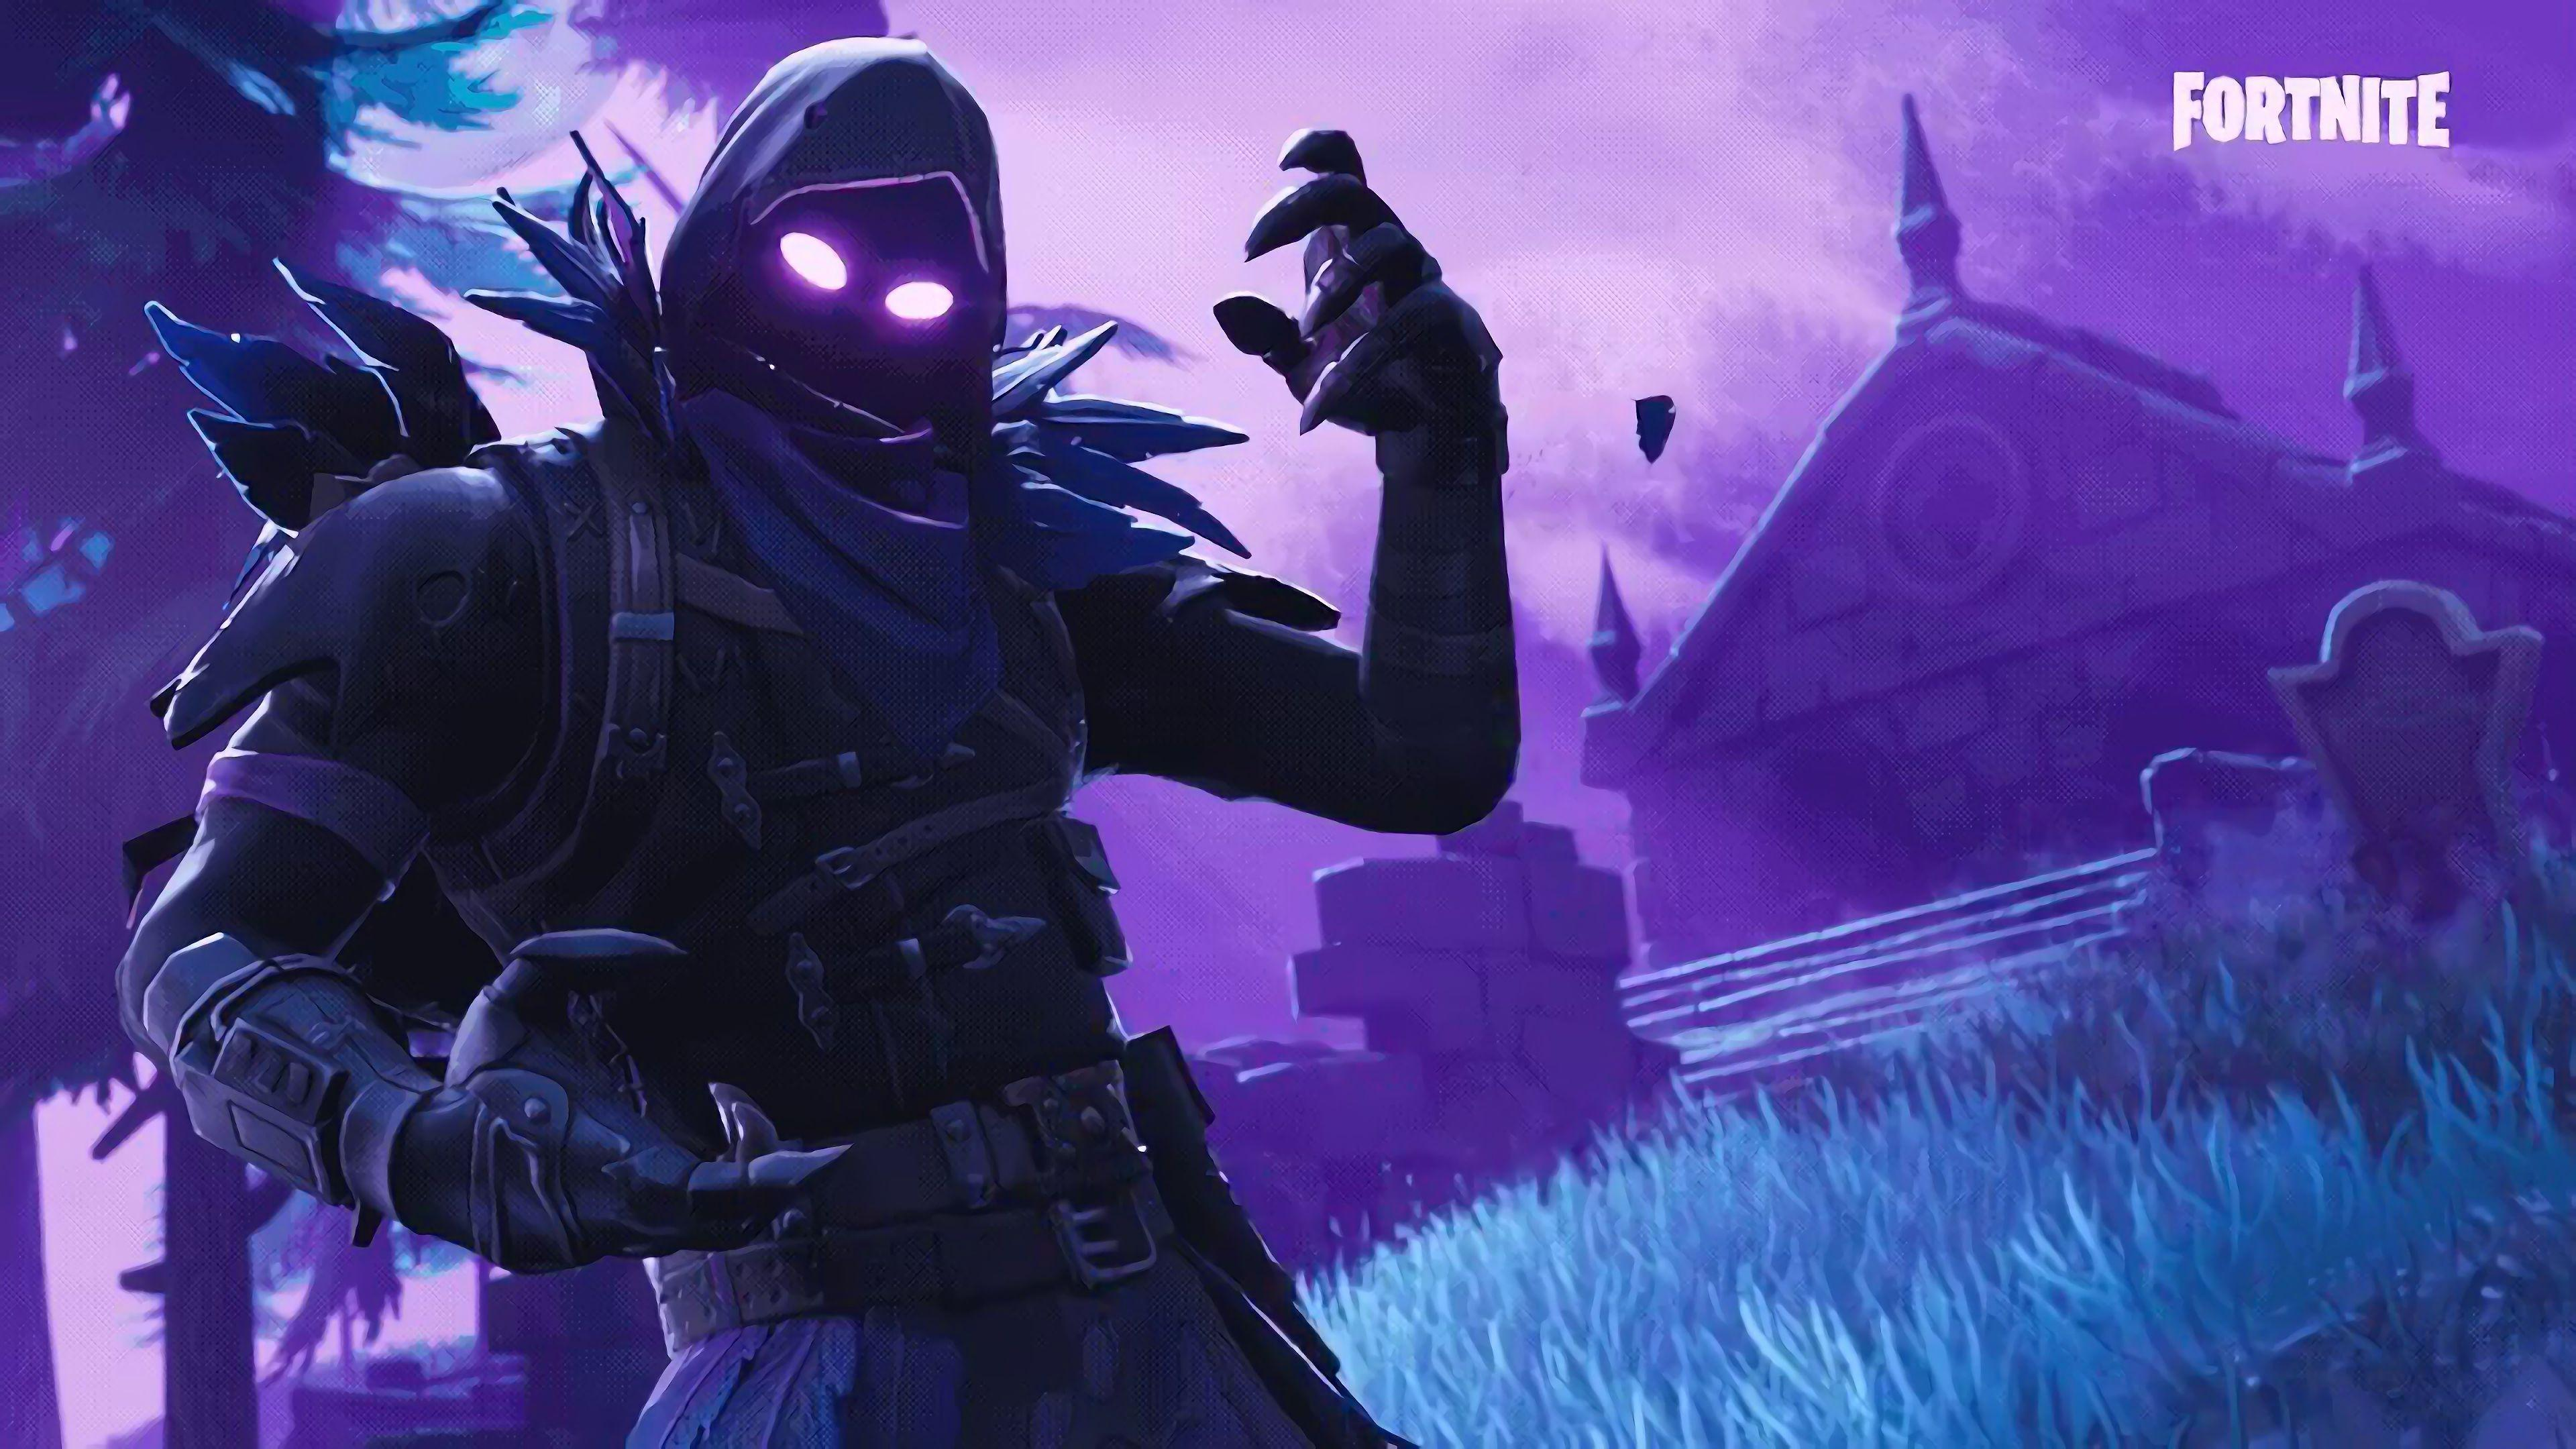 Raven, Fortnite Battle Royale, Video Game, 3840x2160, Wallpapers